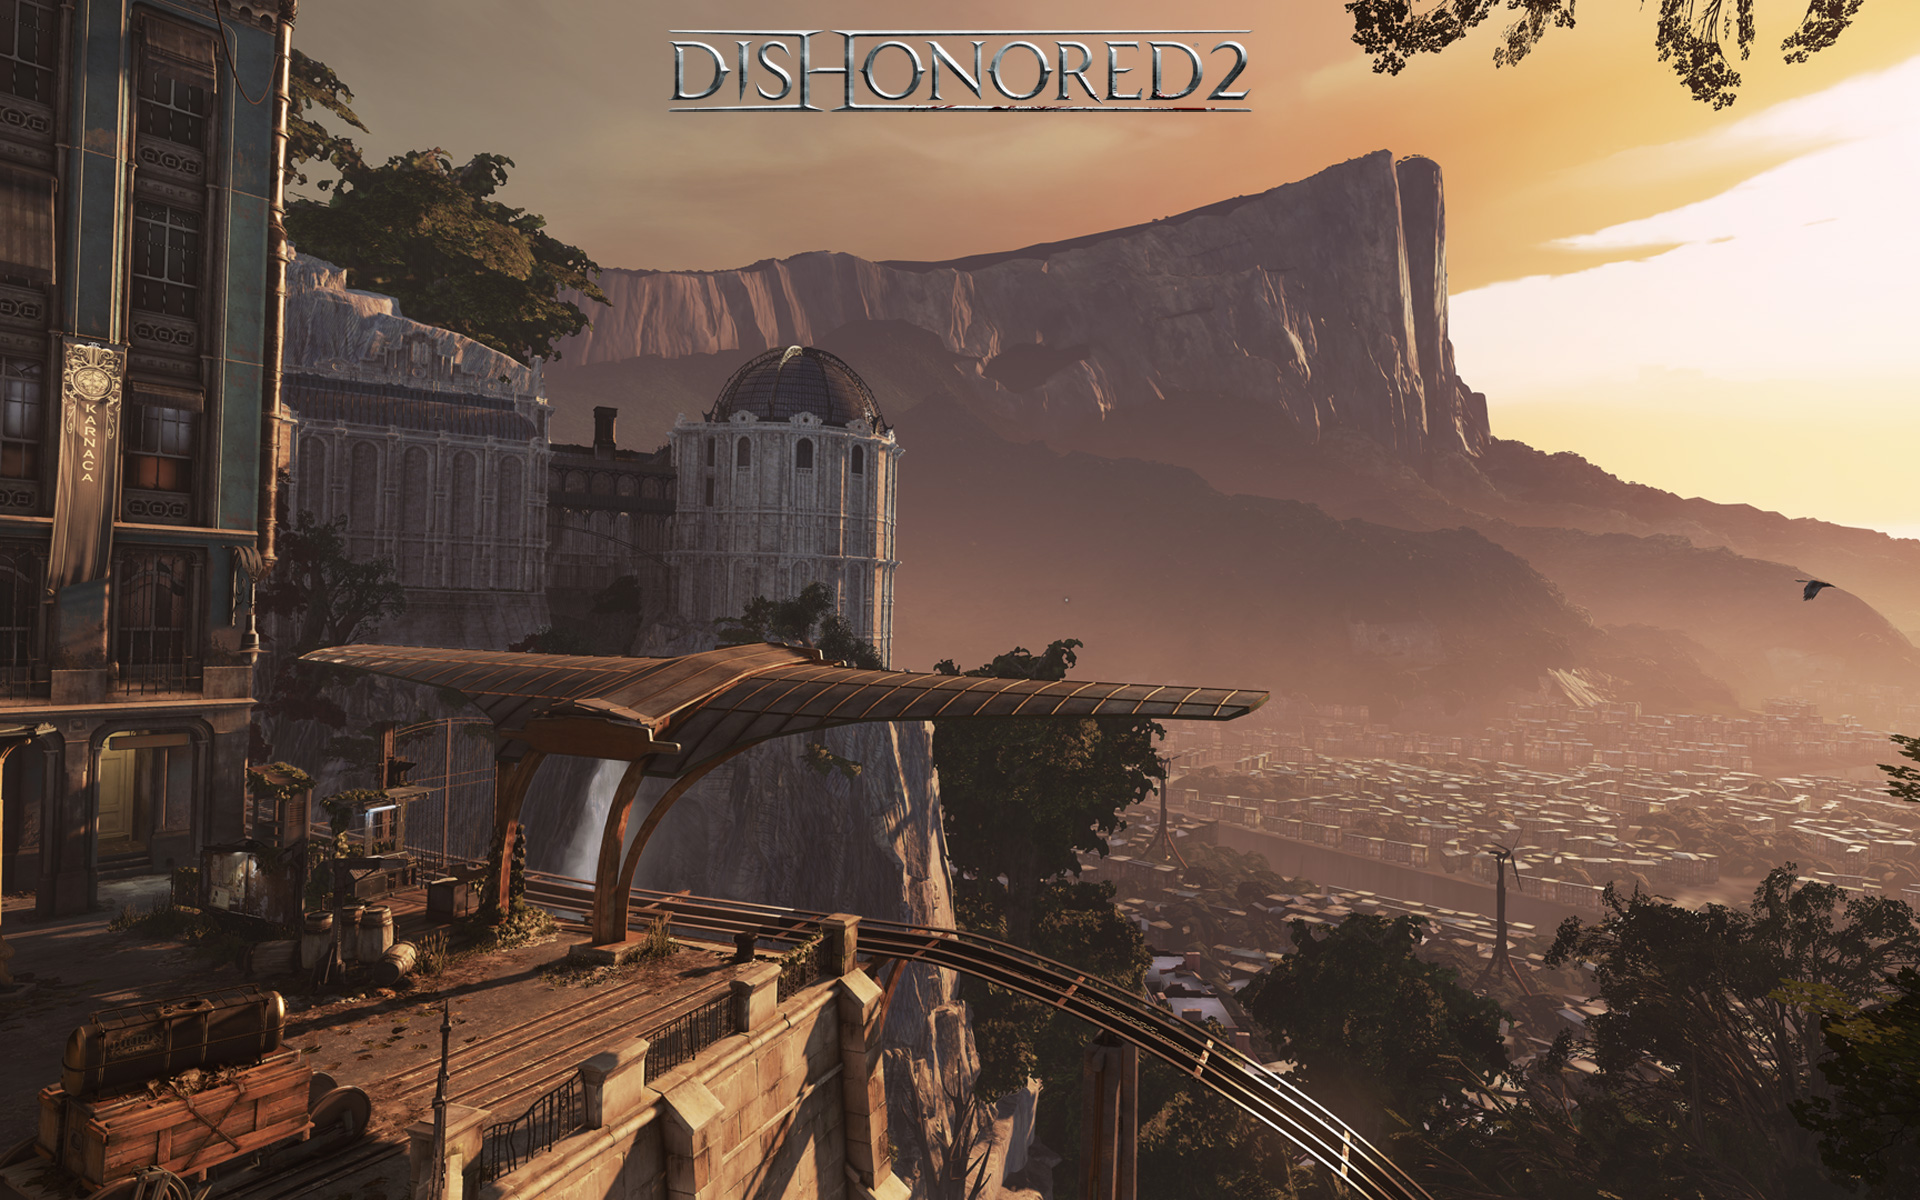 Free Dishonored 2 Wallpaper in 1920x1200